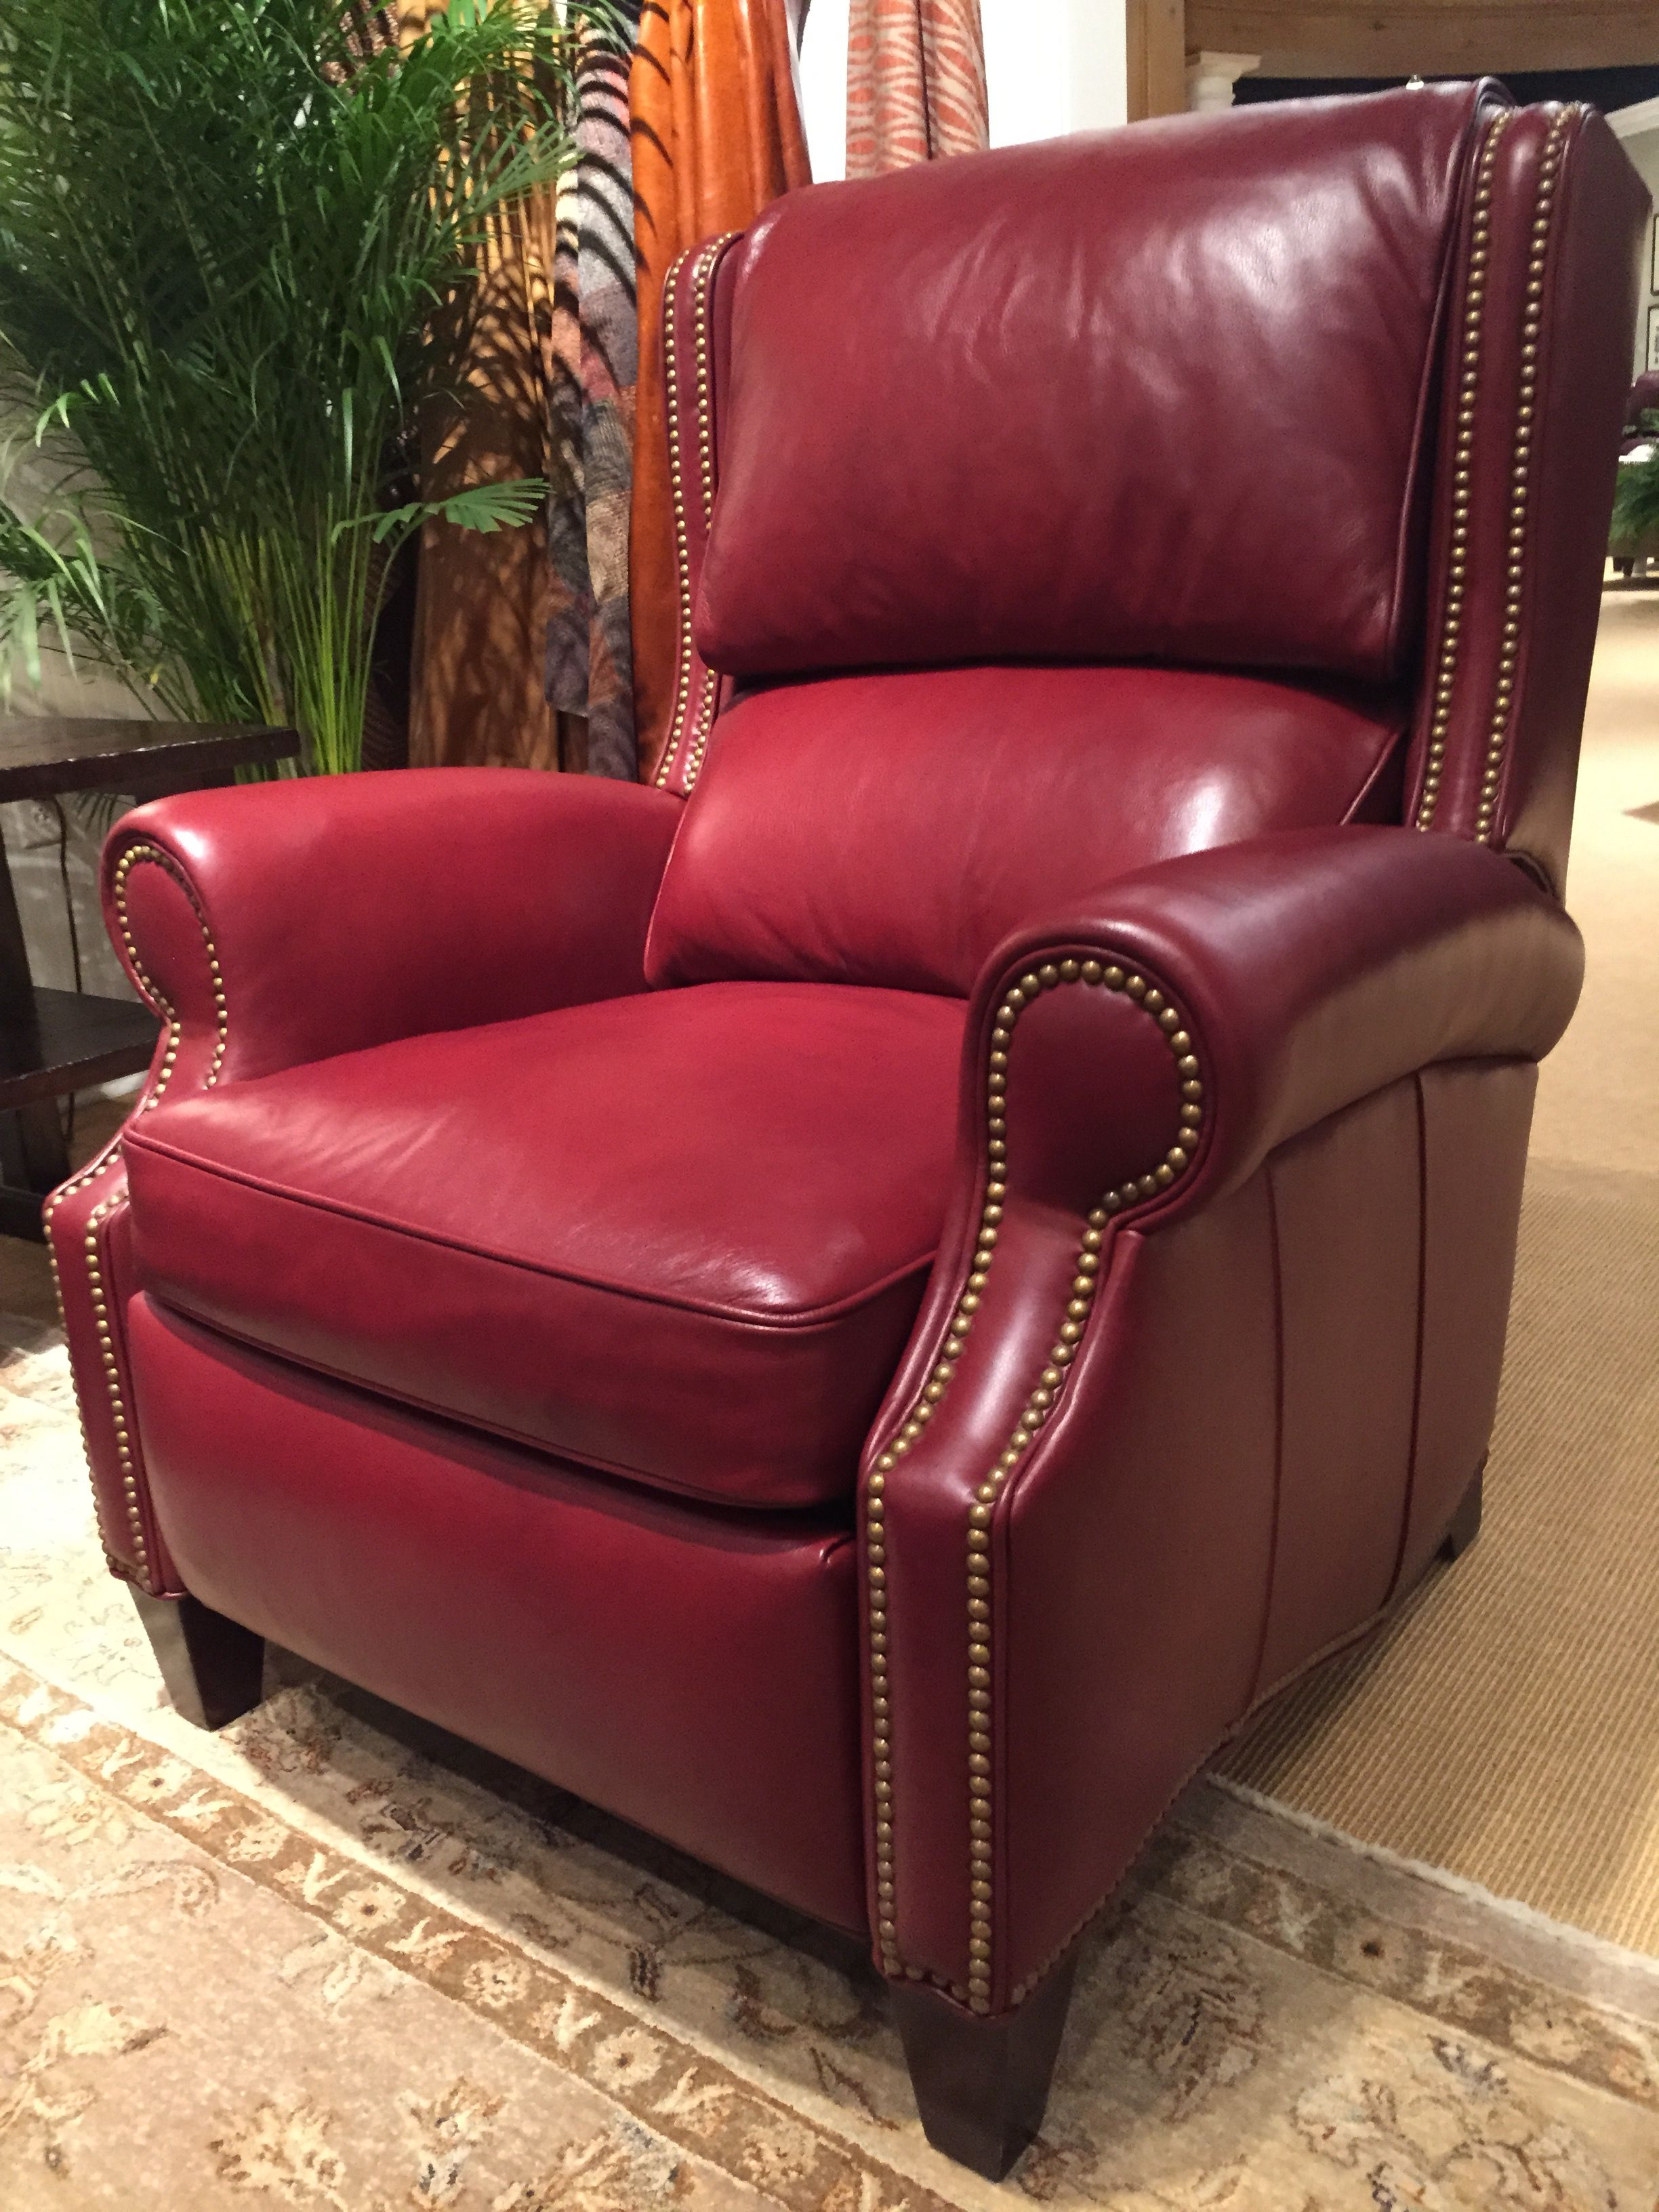 Hancock Moore Red Recliner Spring Furniture Red Decor